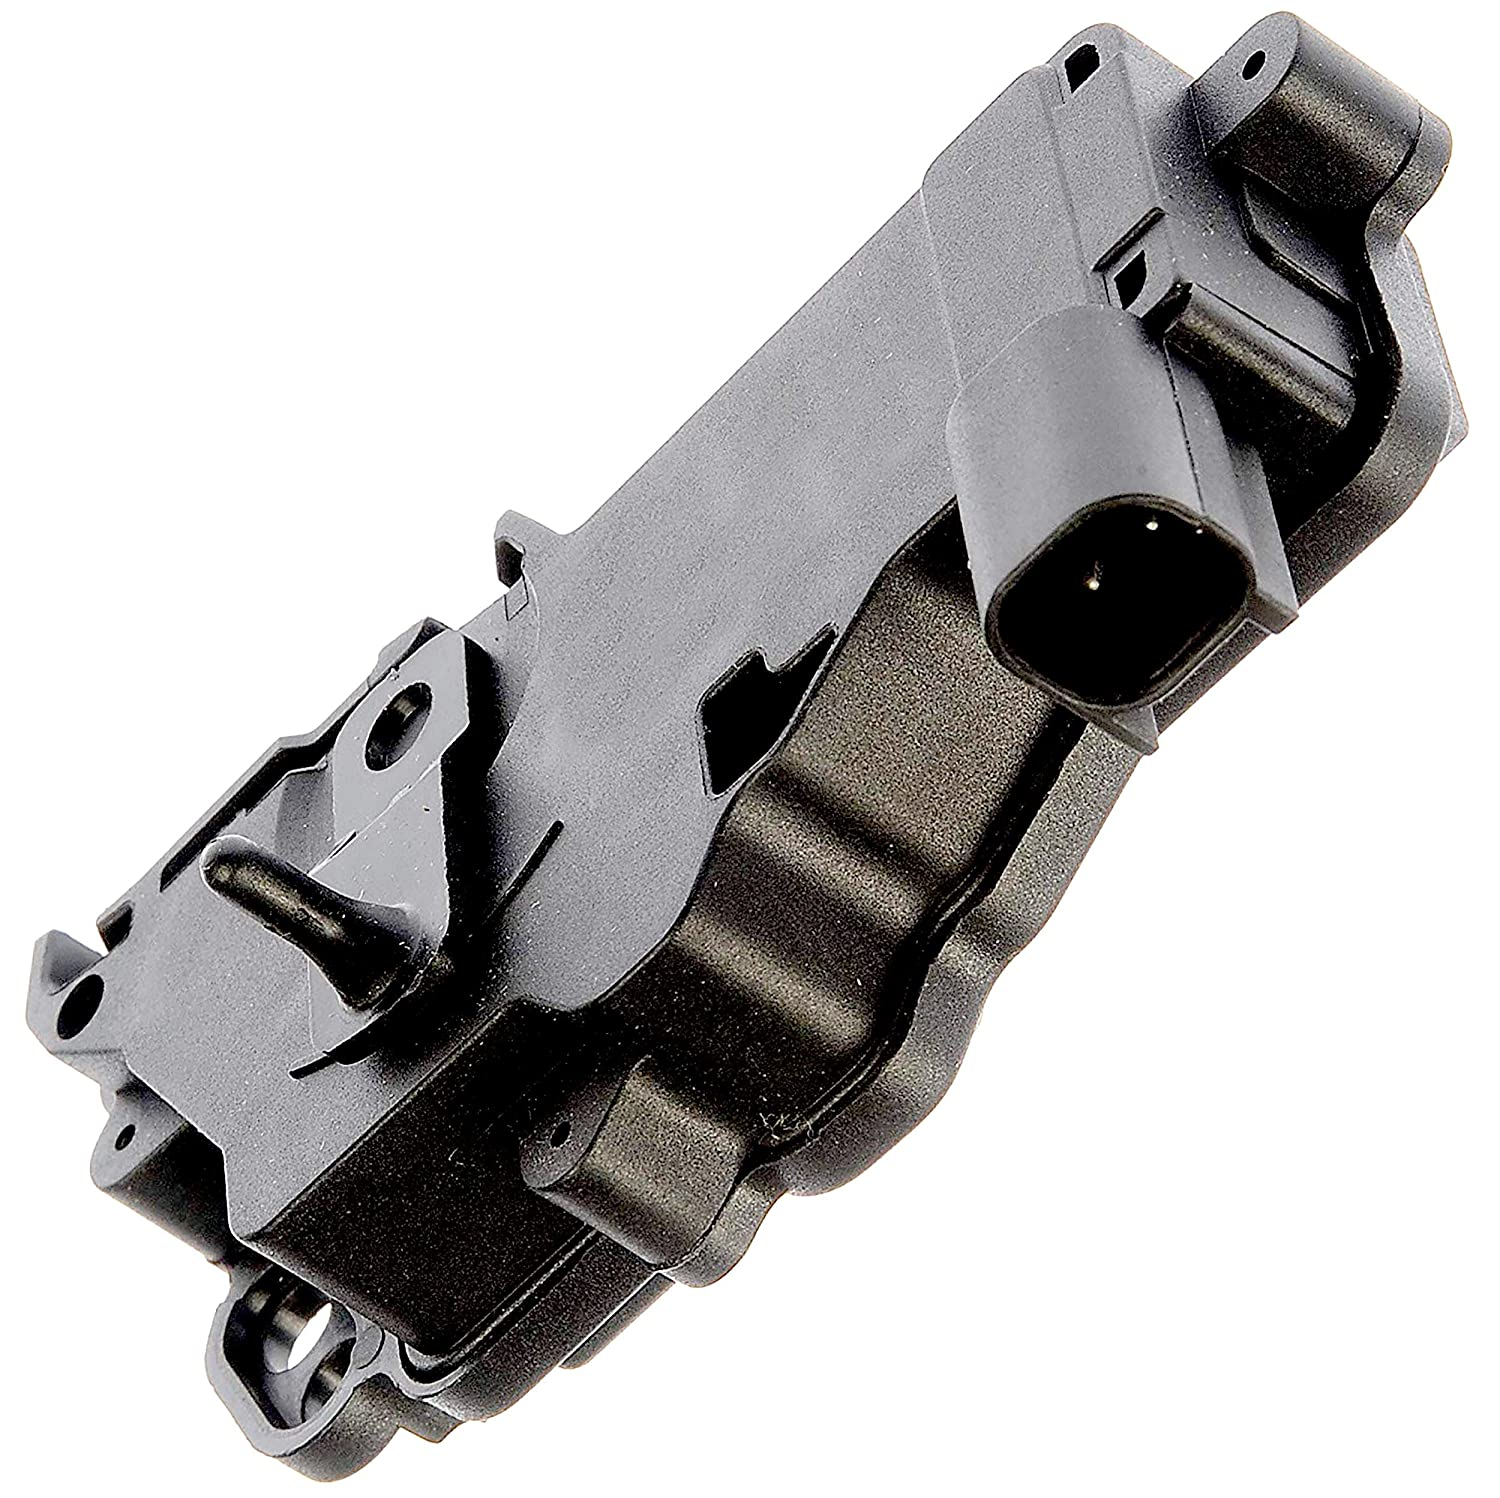 APDTY 857273 Door Lock Actuator Motor Fits Right Passenger-Side On Select Ford Lincoln Mercury View Compatibility Chart For Your Specific Model And Position; Replaces SW6951, 6L2Z-78218A42-AA